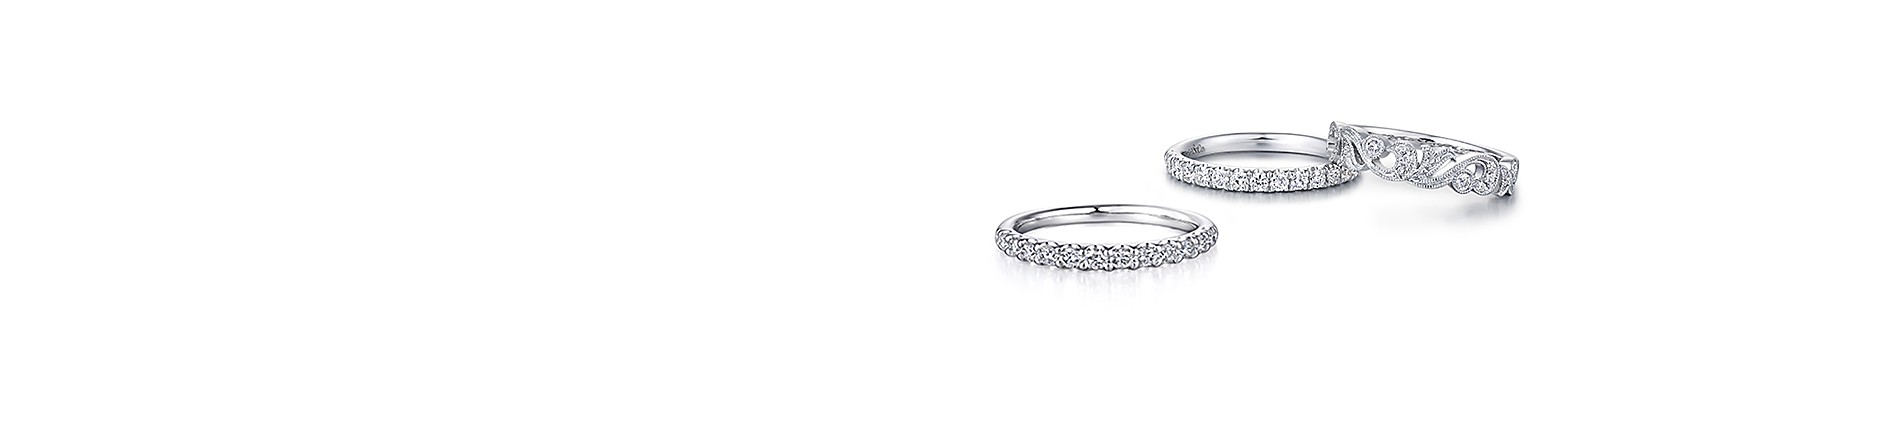 designs silverscape engagement ring products bands diamond rings band detailed